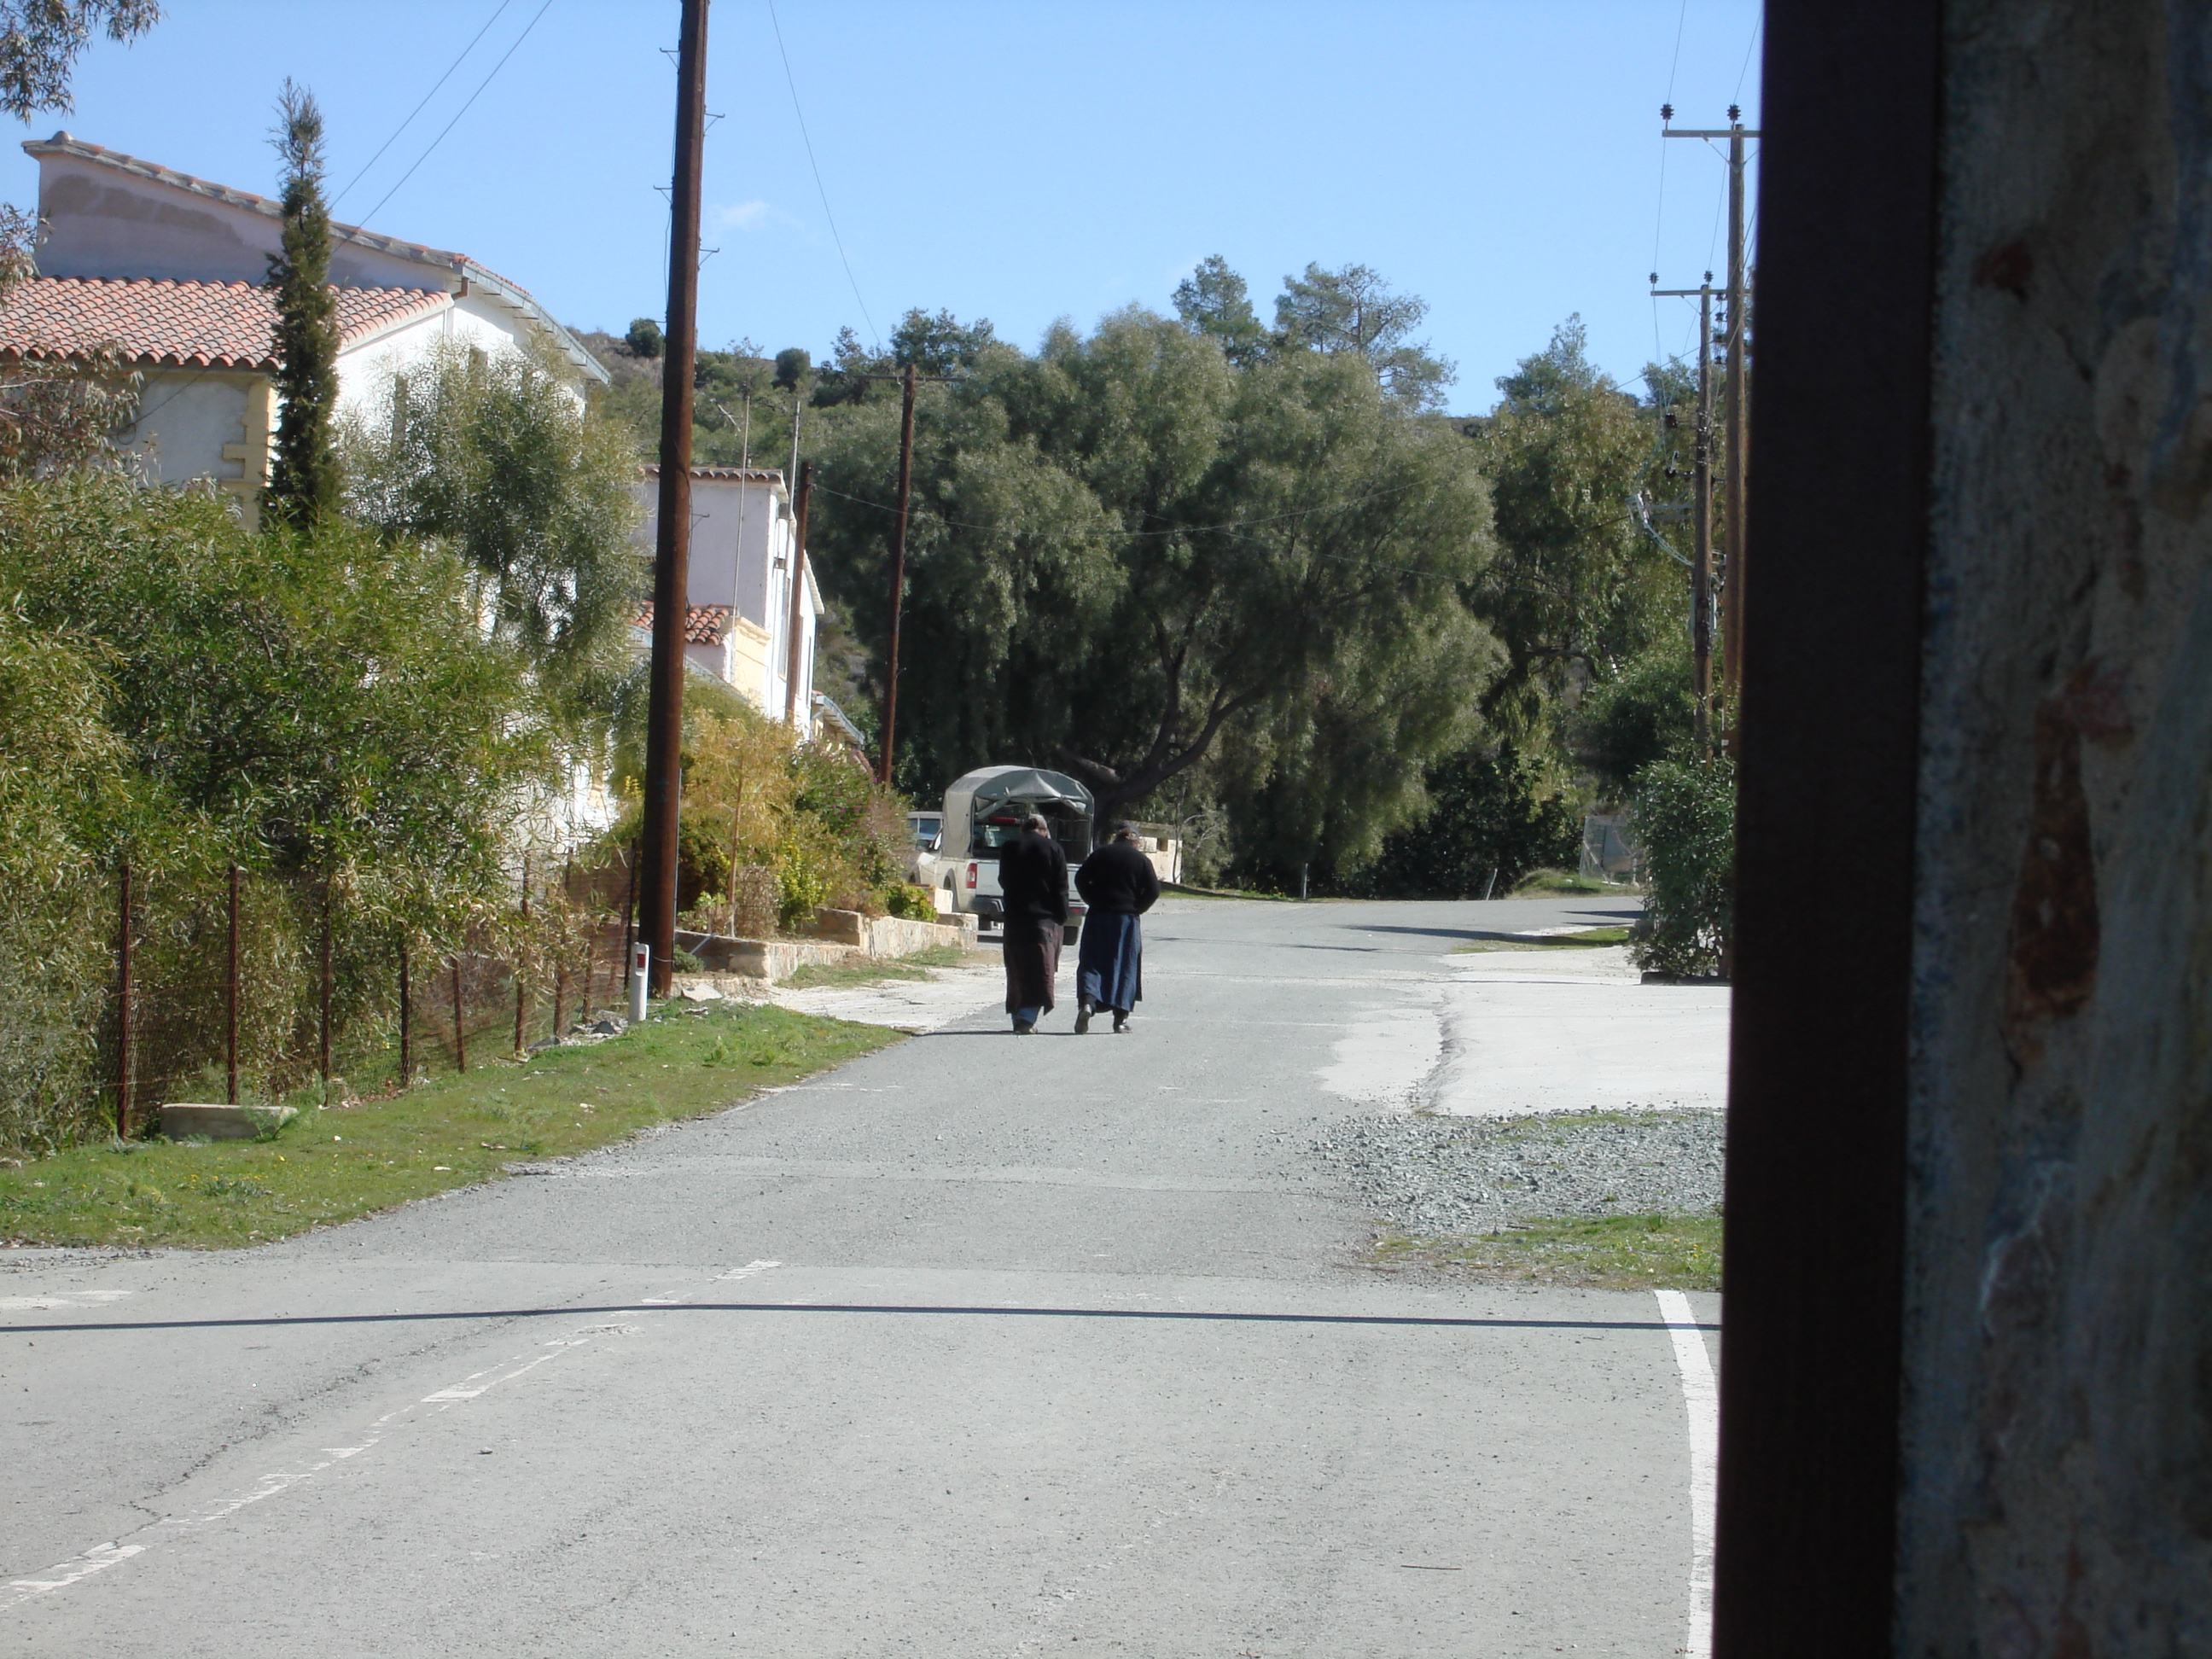 Two monks walk along the entrance to a monestery